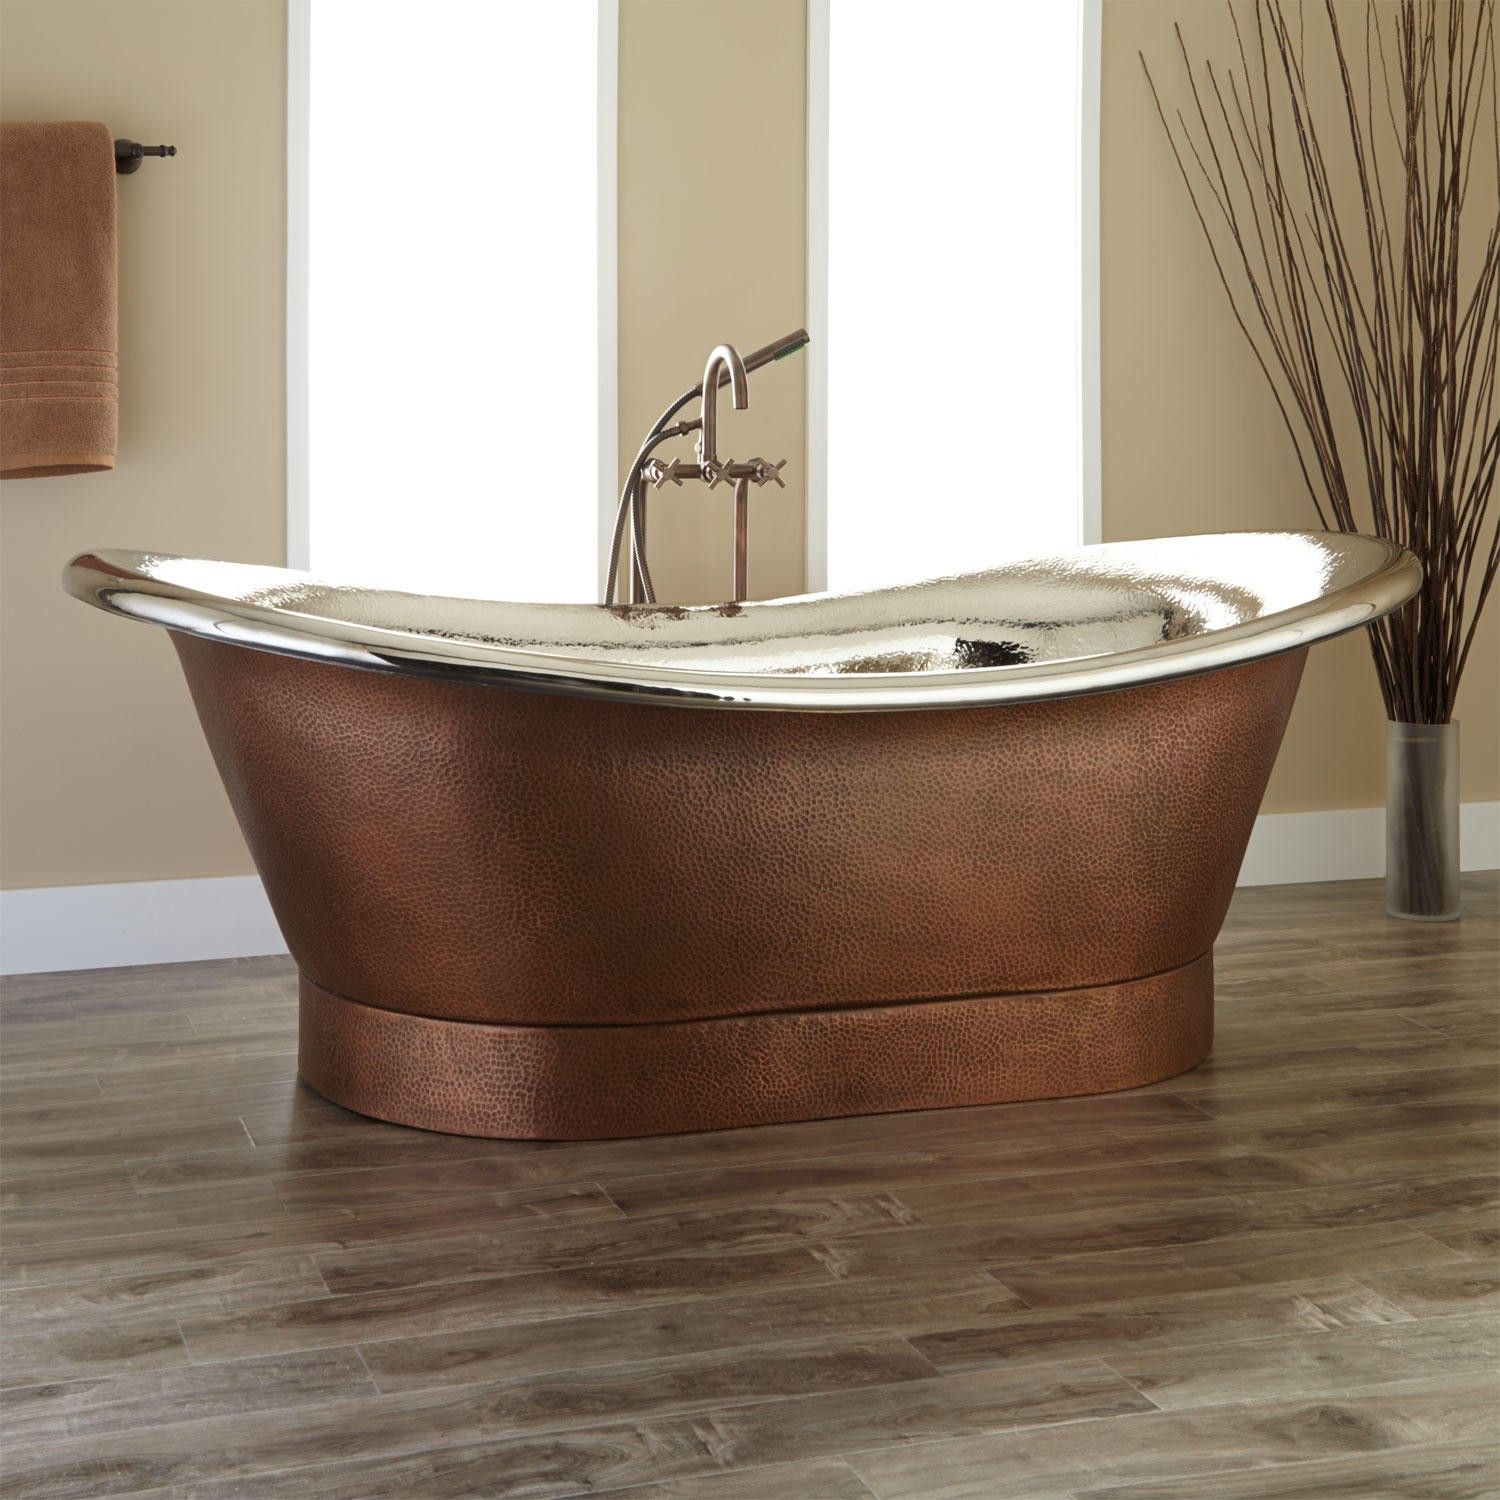 Entspannendes badezimmerdekor copper bathtubs turning your bathroom into an antique paradise